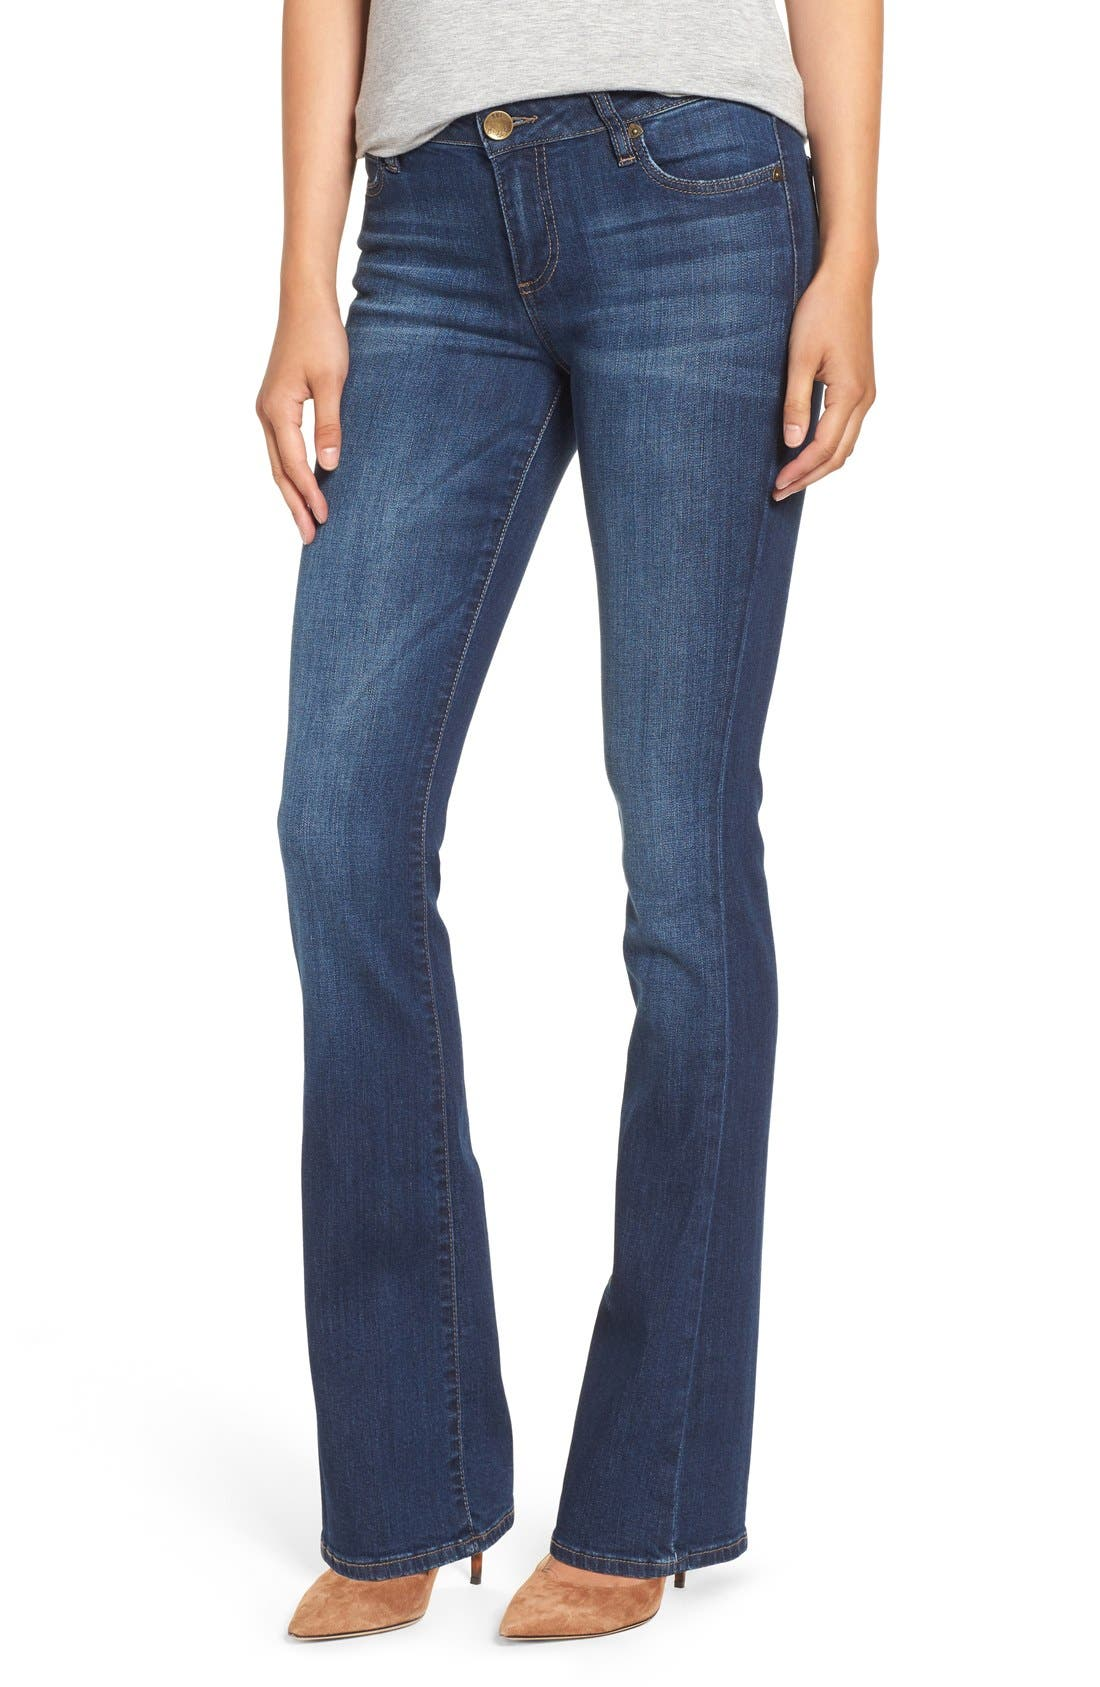 KUT FROM THE KLOTH 'Natalie' Stretch Curvy Bootcut